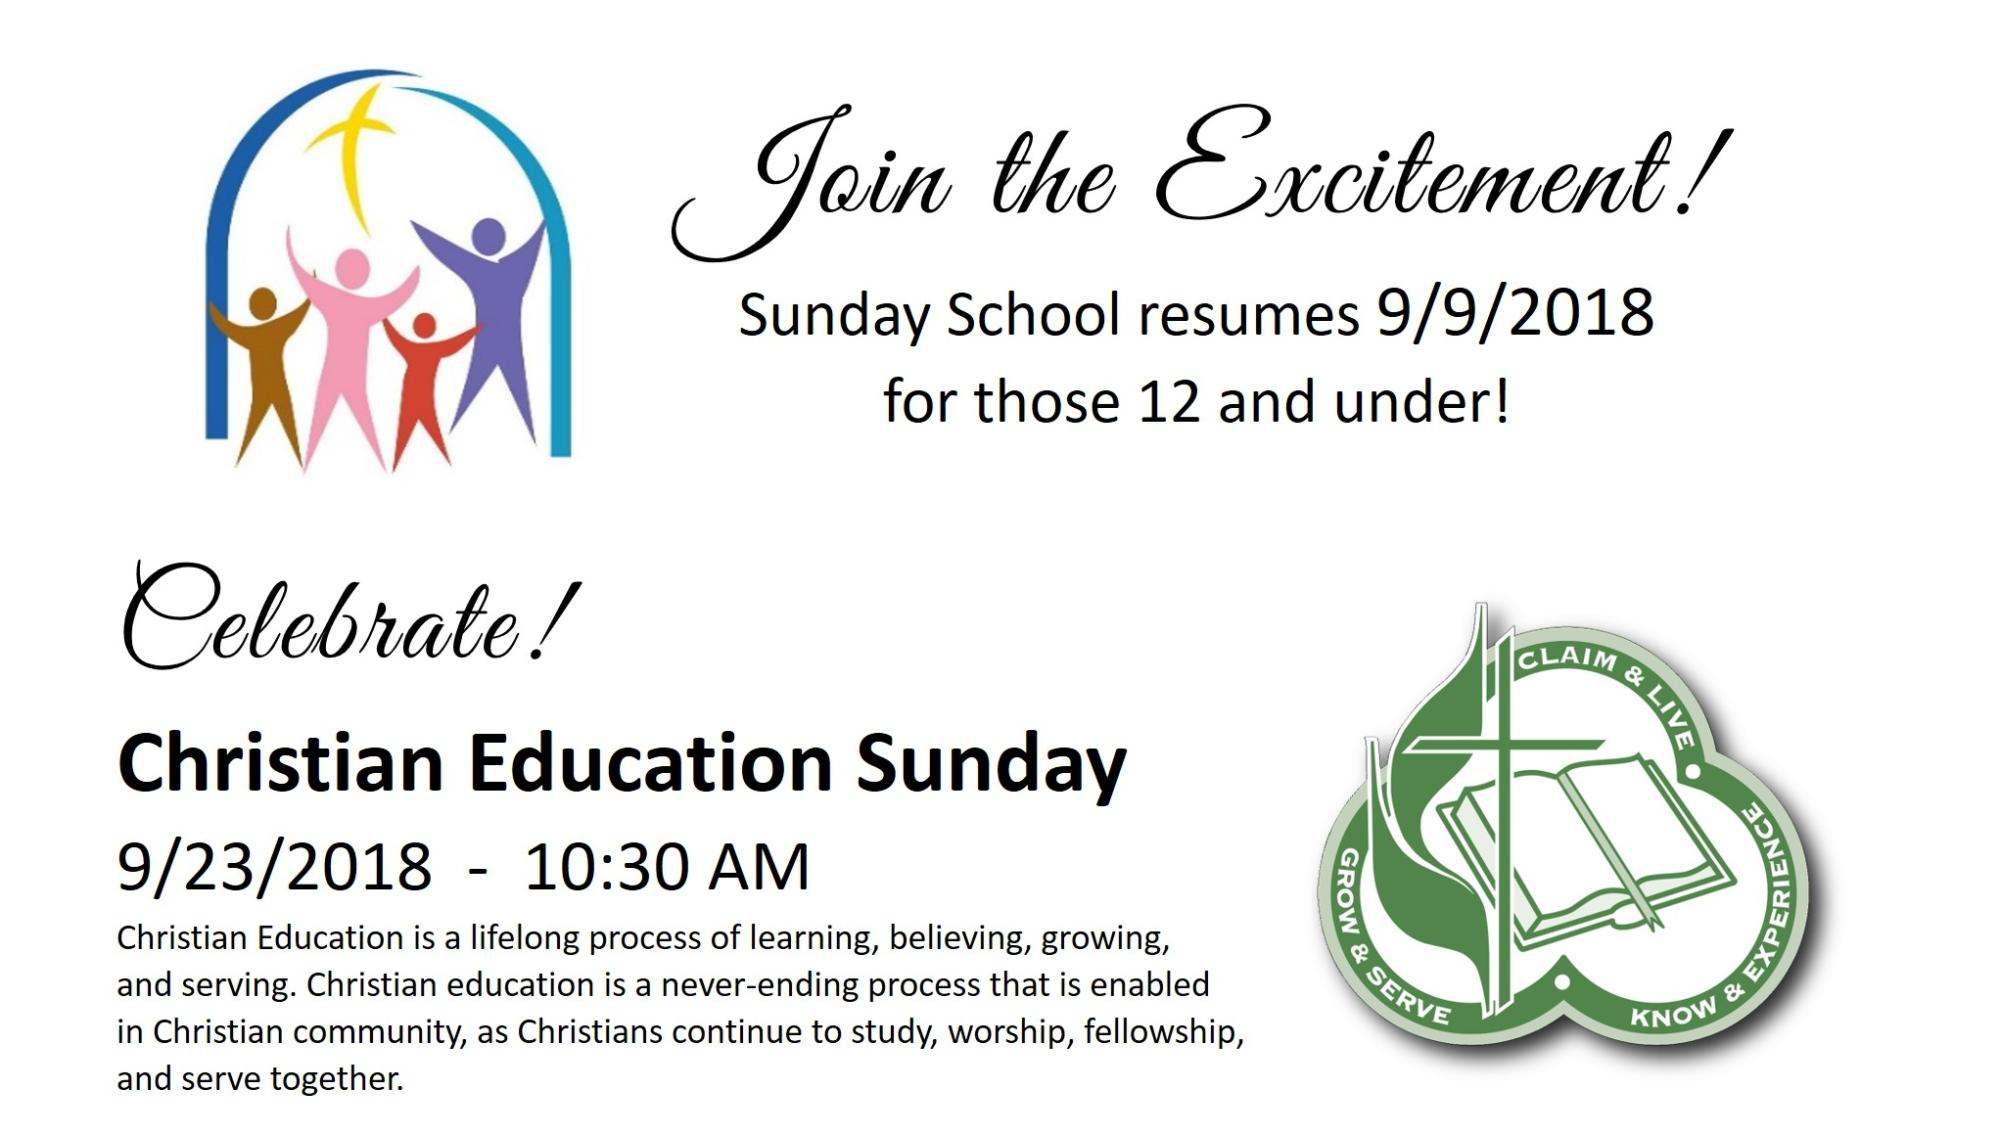 2018_Christian_Educaton_Sunday_and_Sunday_School_resumes.jpg